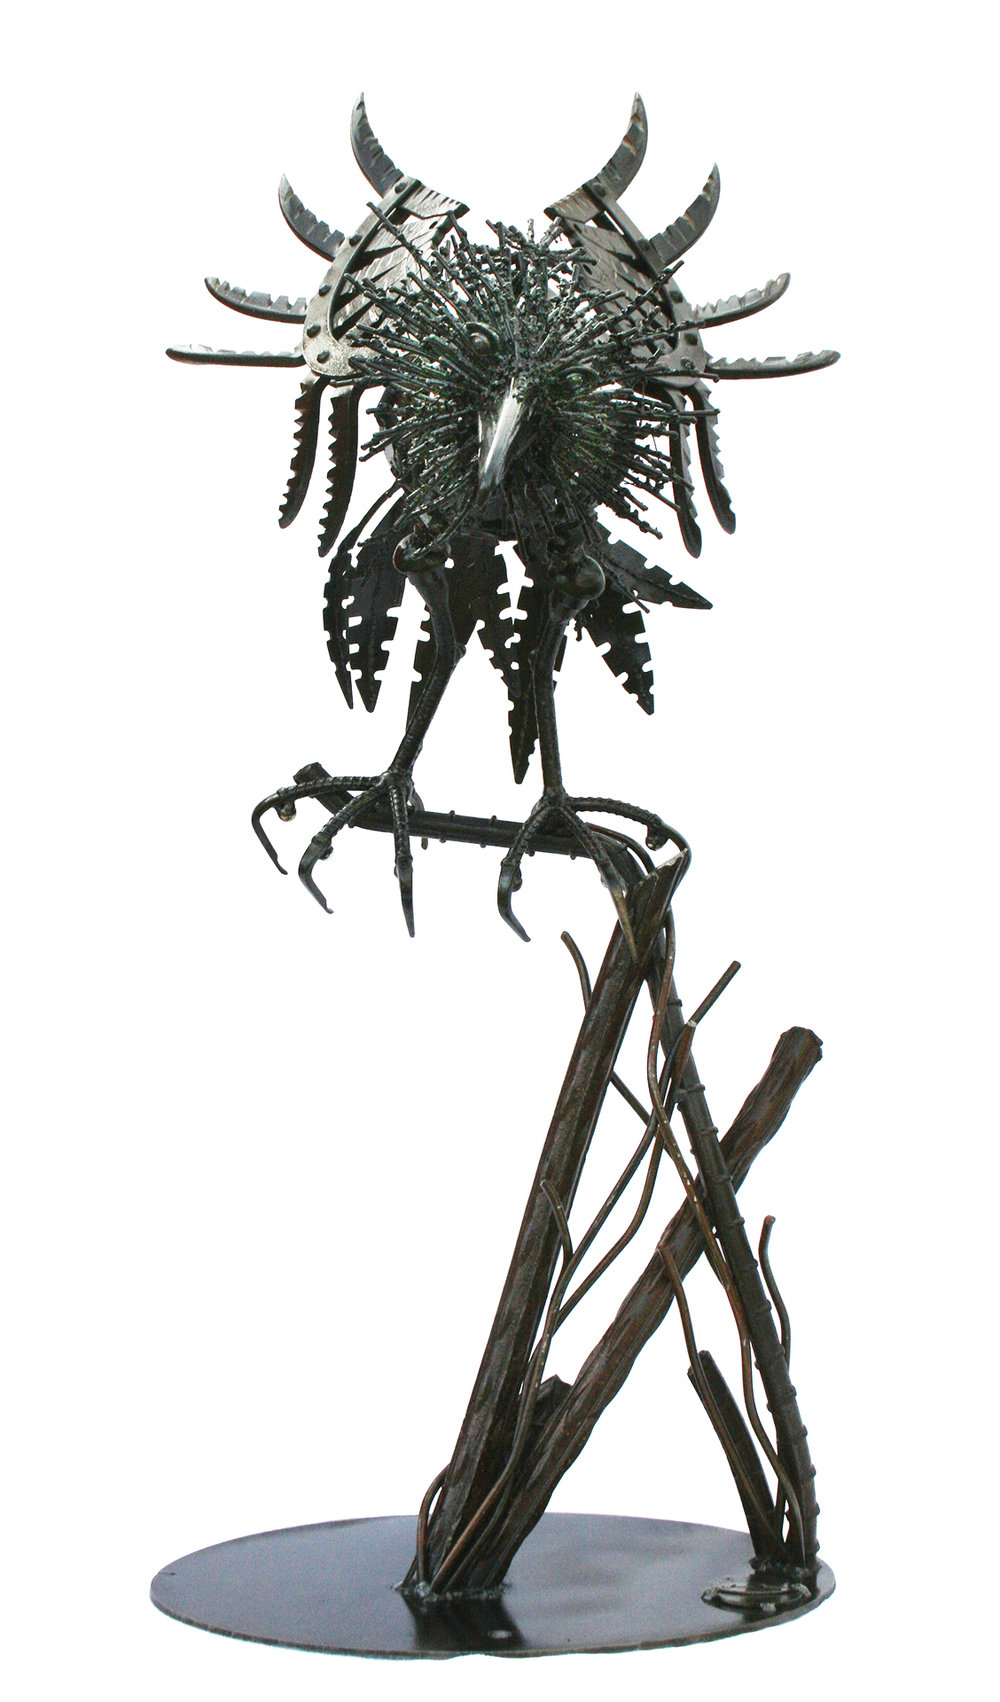 "Harrow bird on branch (36"" tall x 20"" wide x 24"" long)"